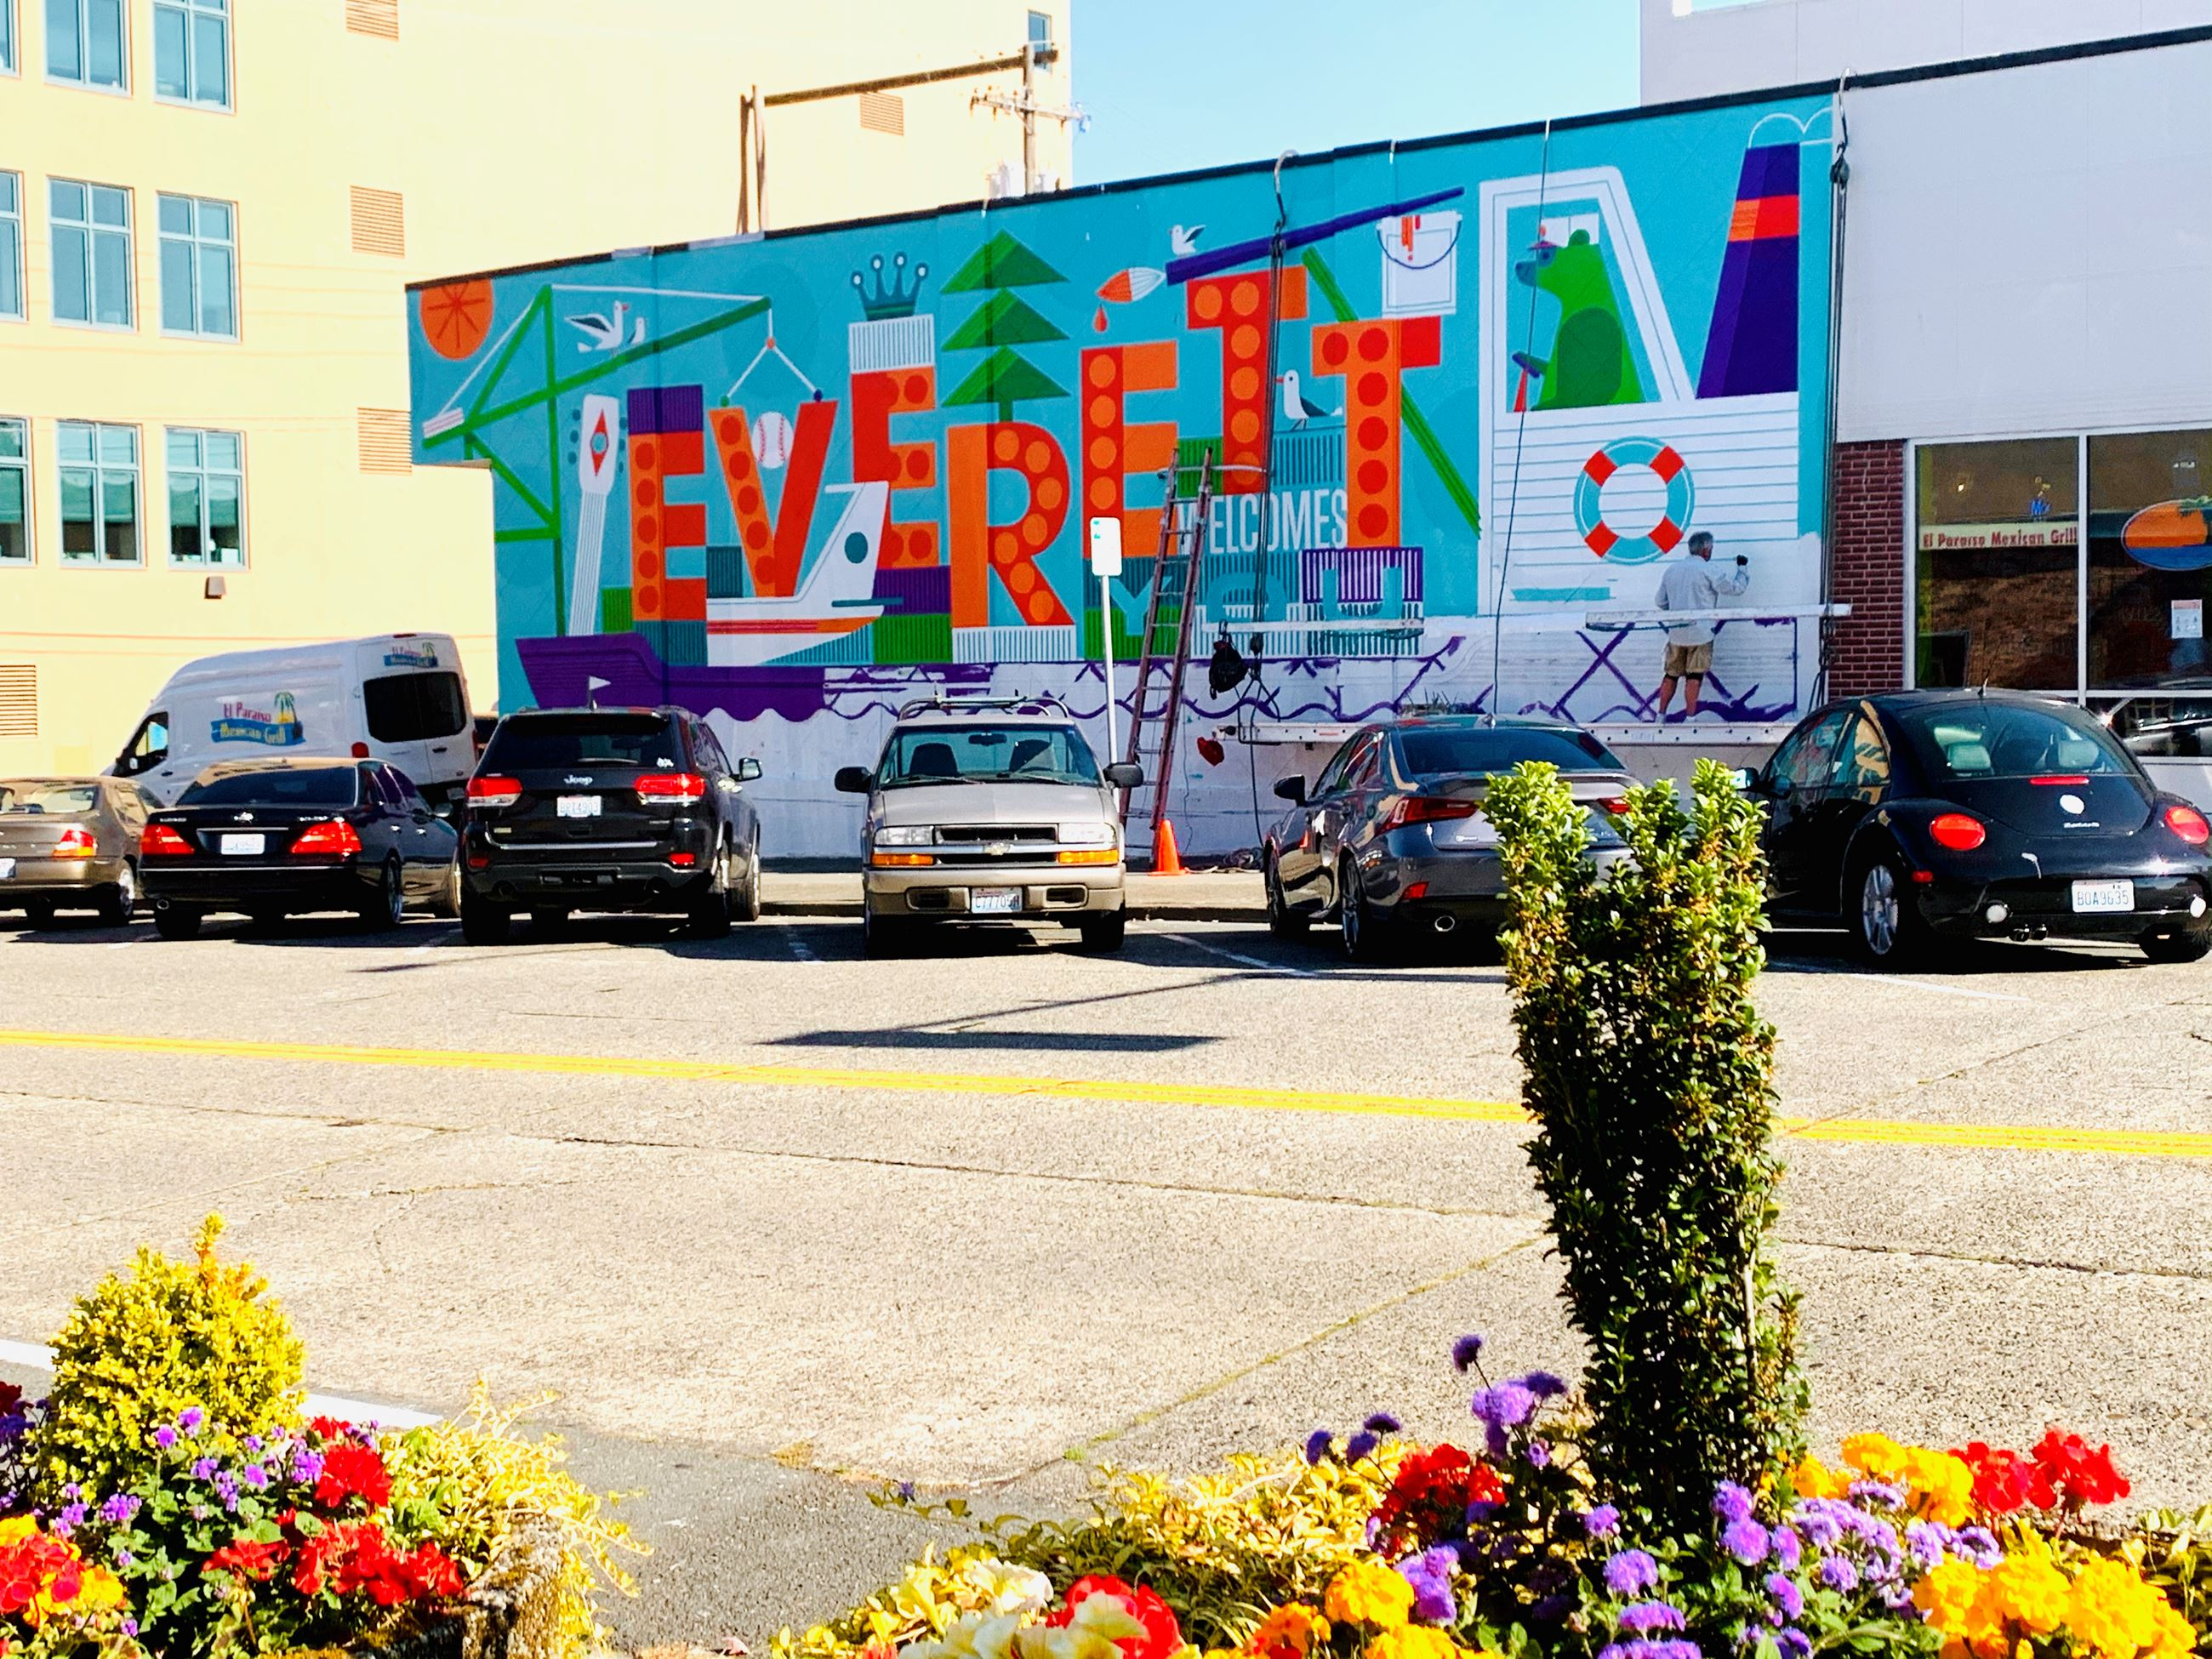 Everett Welcomes You mural